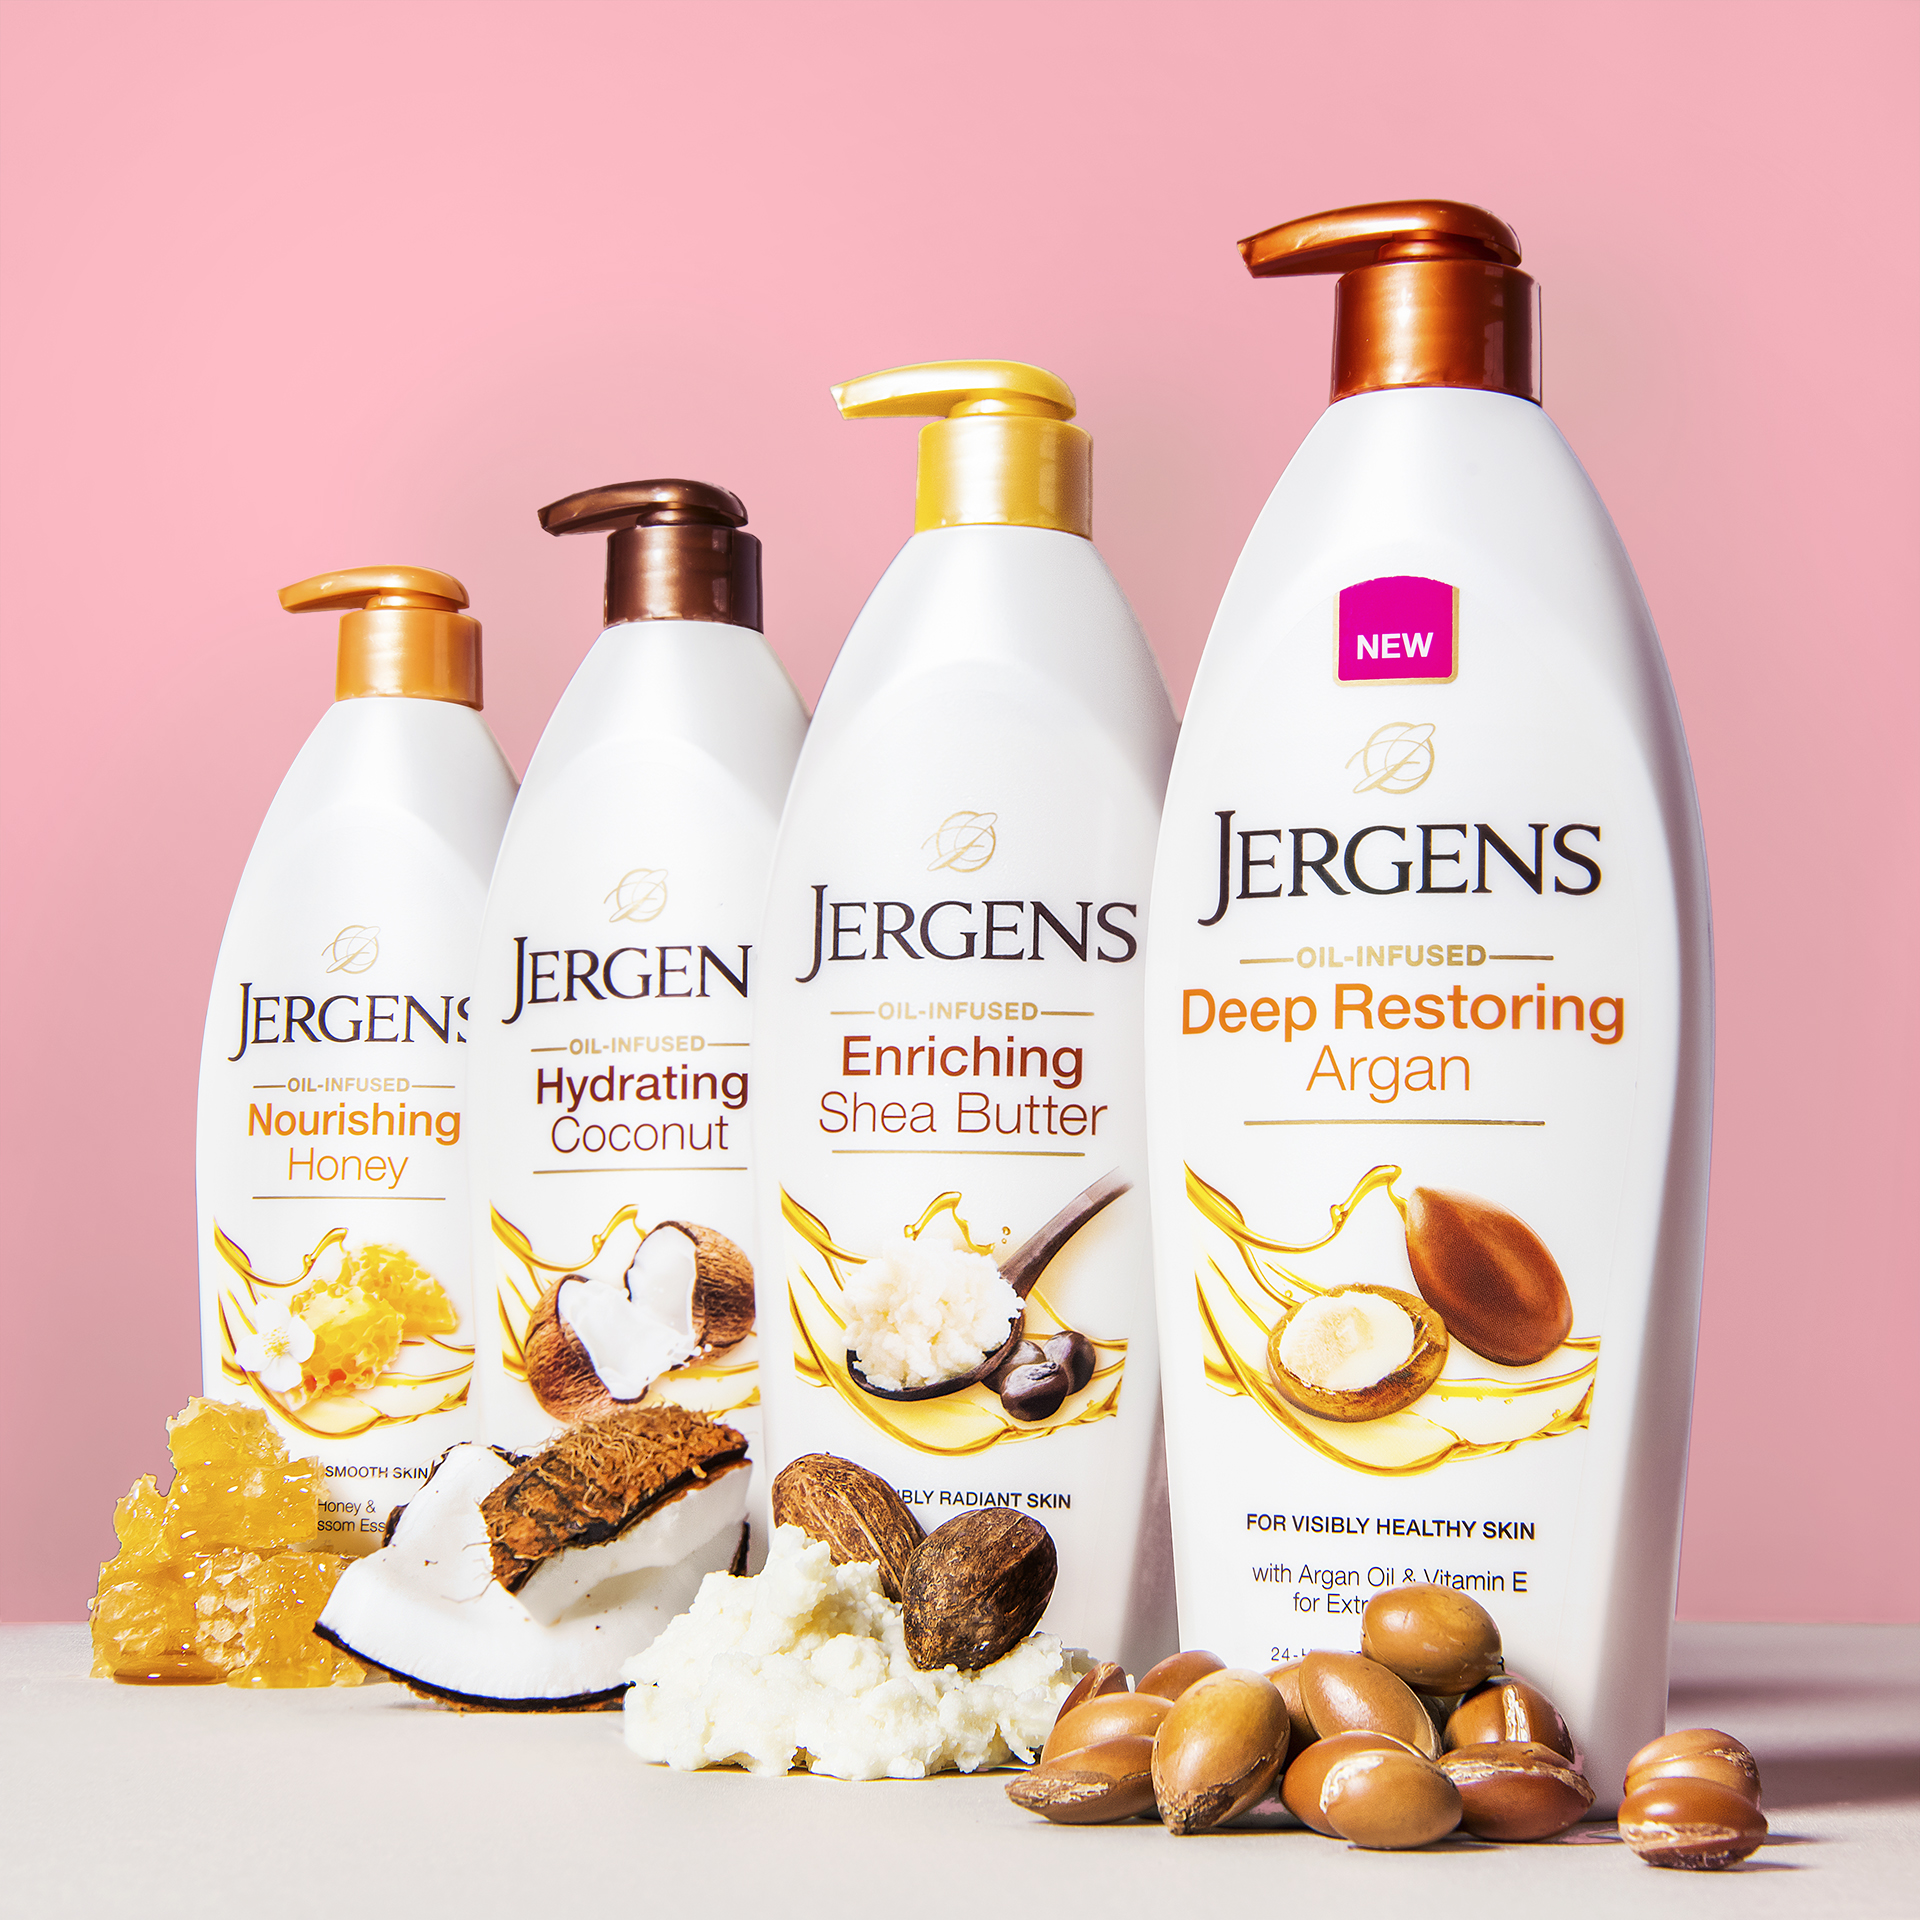 Line up of multiple Jergens Lotions products and ingredients such as argan nuts and honeycomb